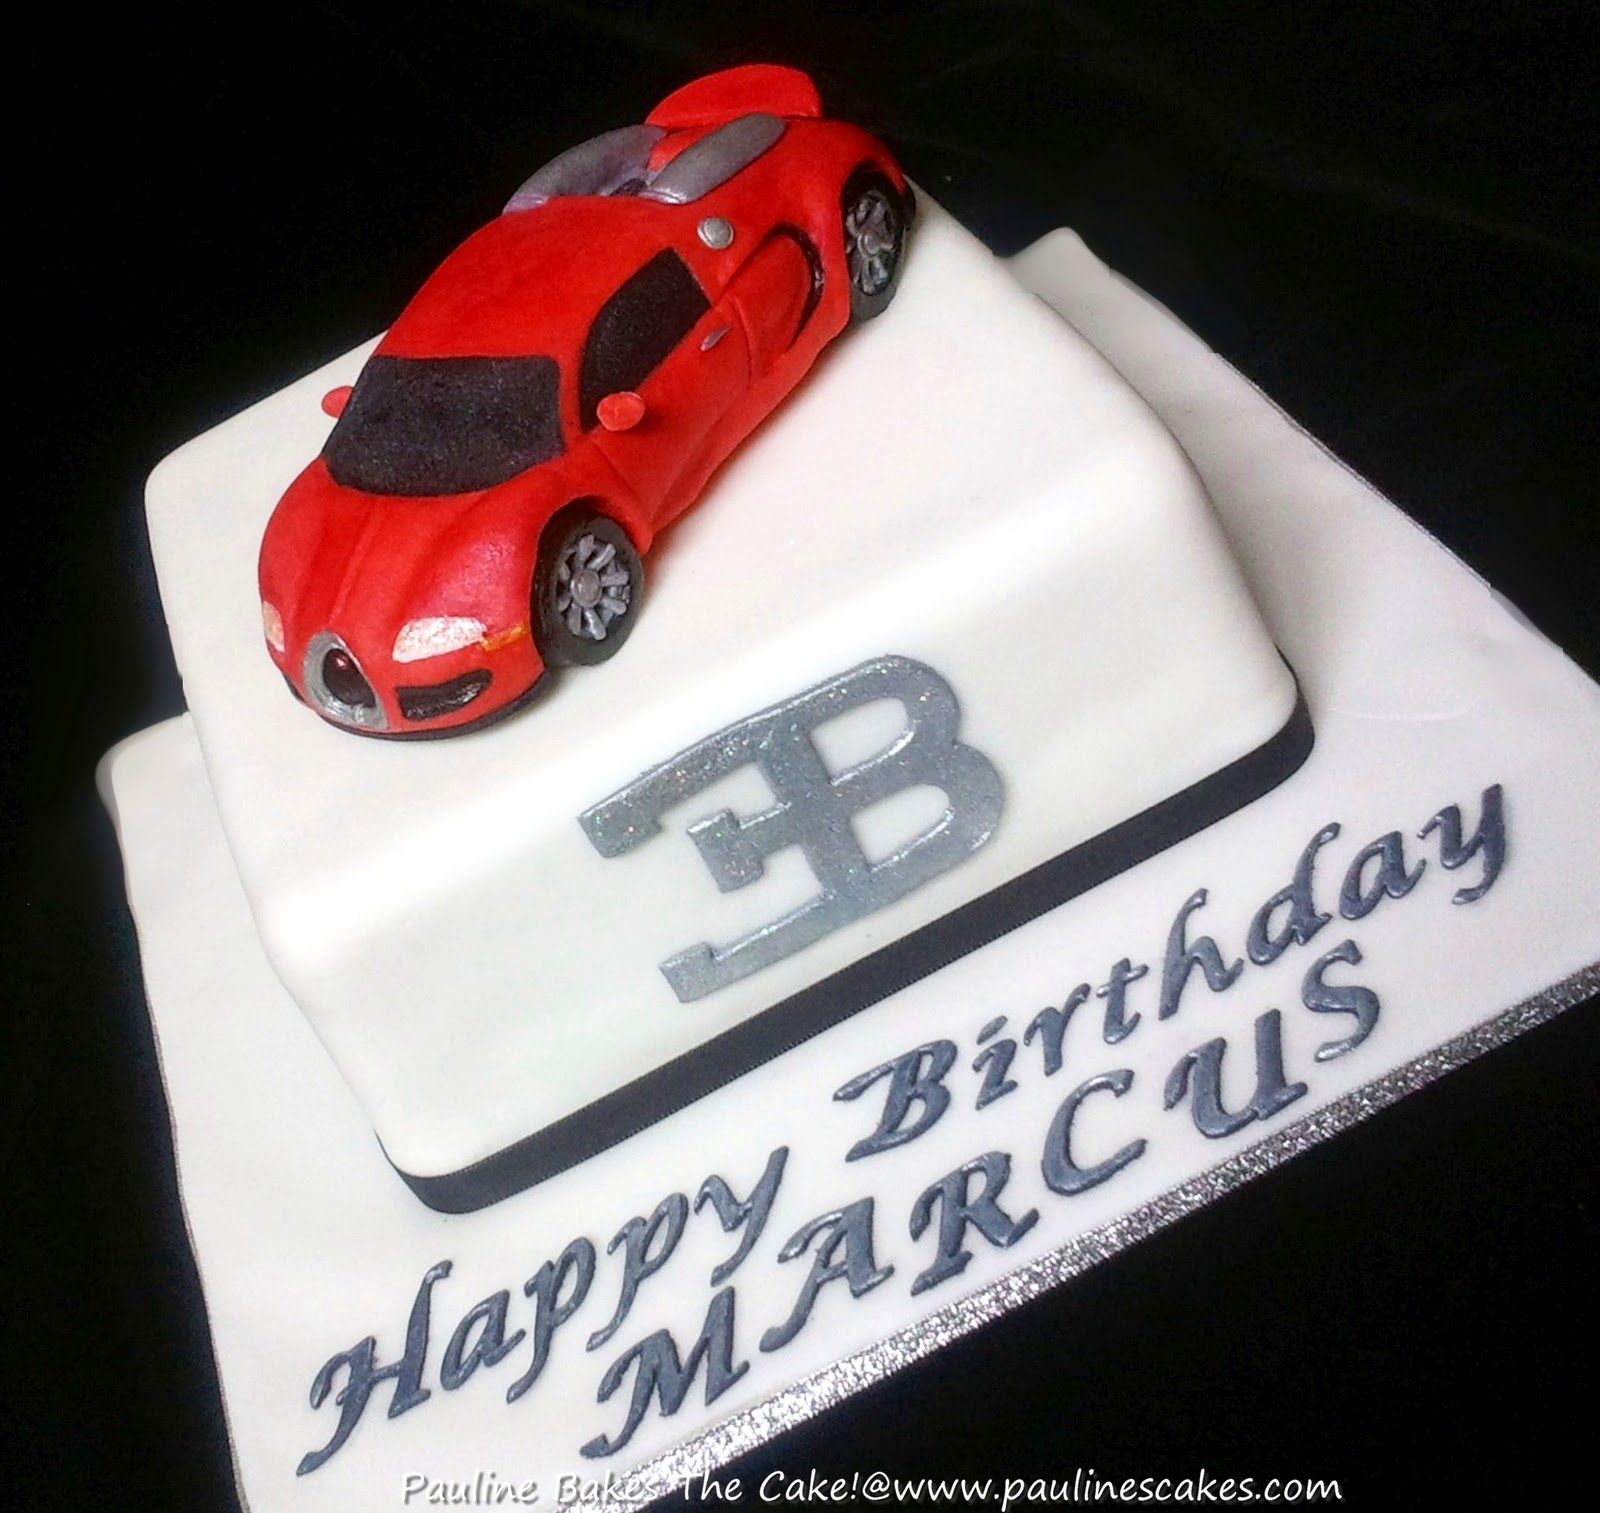 Pauline Bakes The Cake Here Comes The Bugatti Veyron Fastest